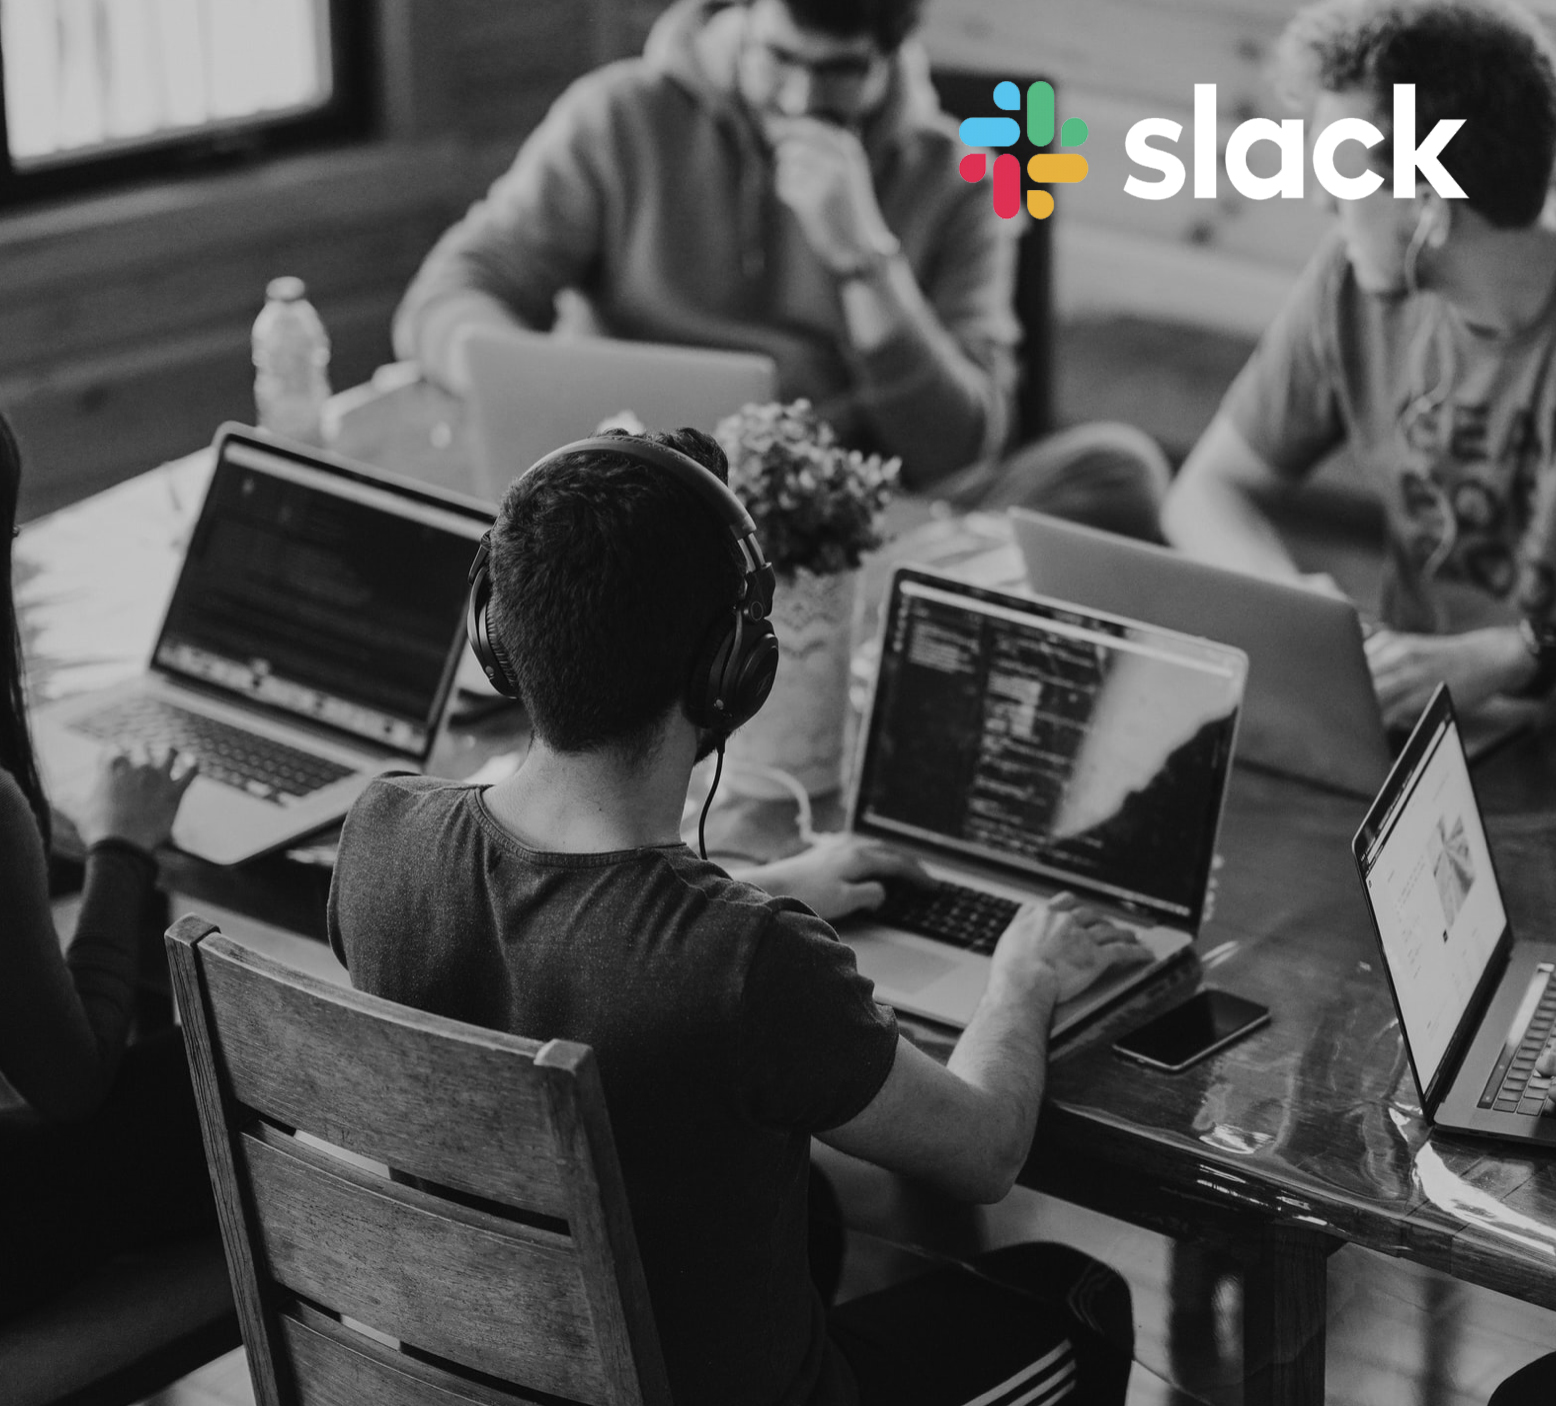 The Modern Collaboration Hub: Using Slack and Atlassian to Integrate People, Process, Data and Technology